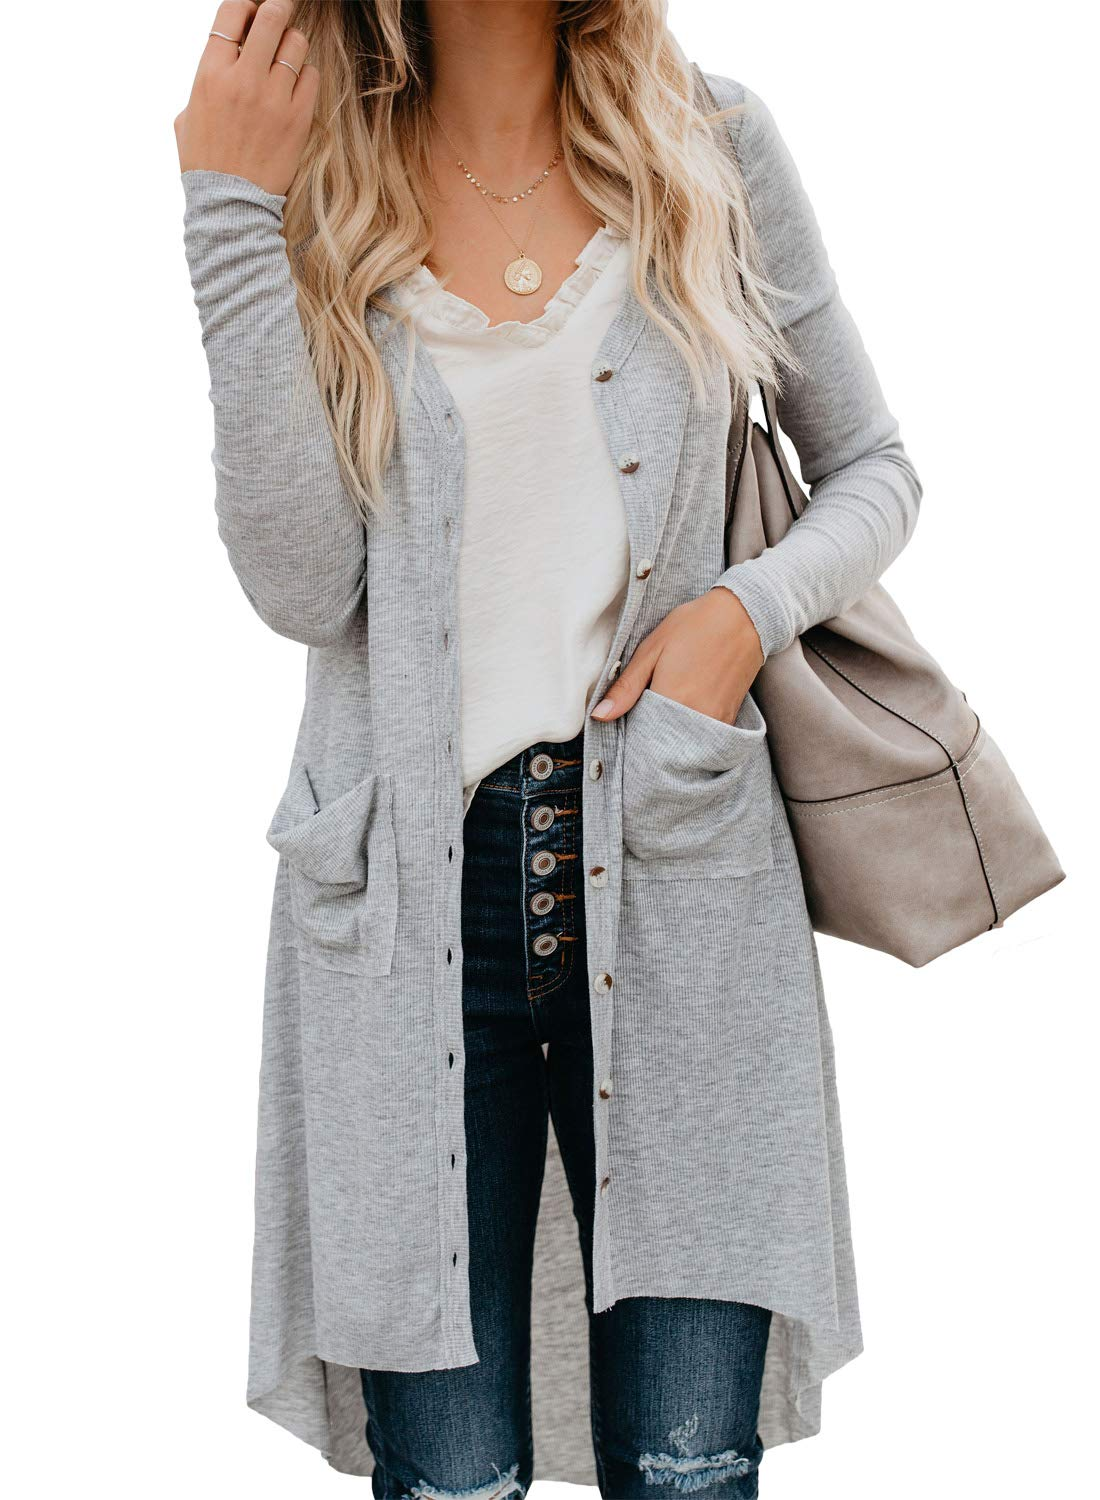 Long Sleeve Solid Color Cardigan Sweaters for Women - Button Down Pocketed Knit Cardigans Outerwear